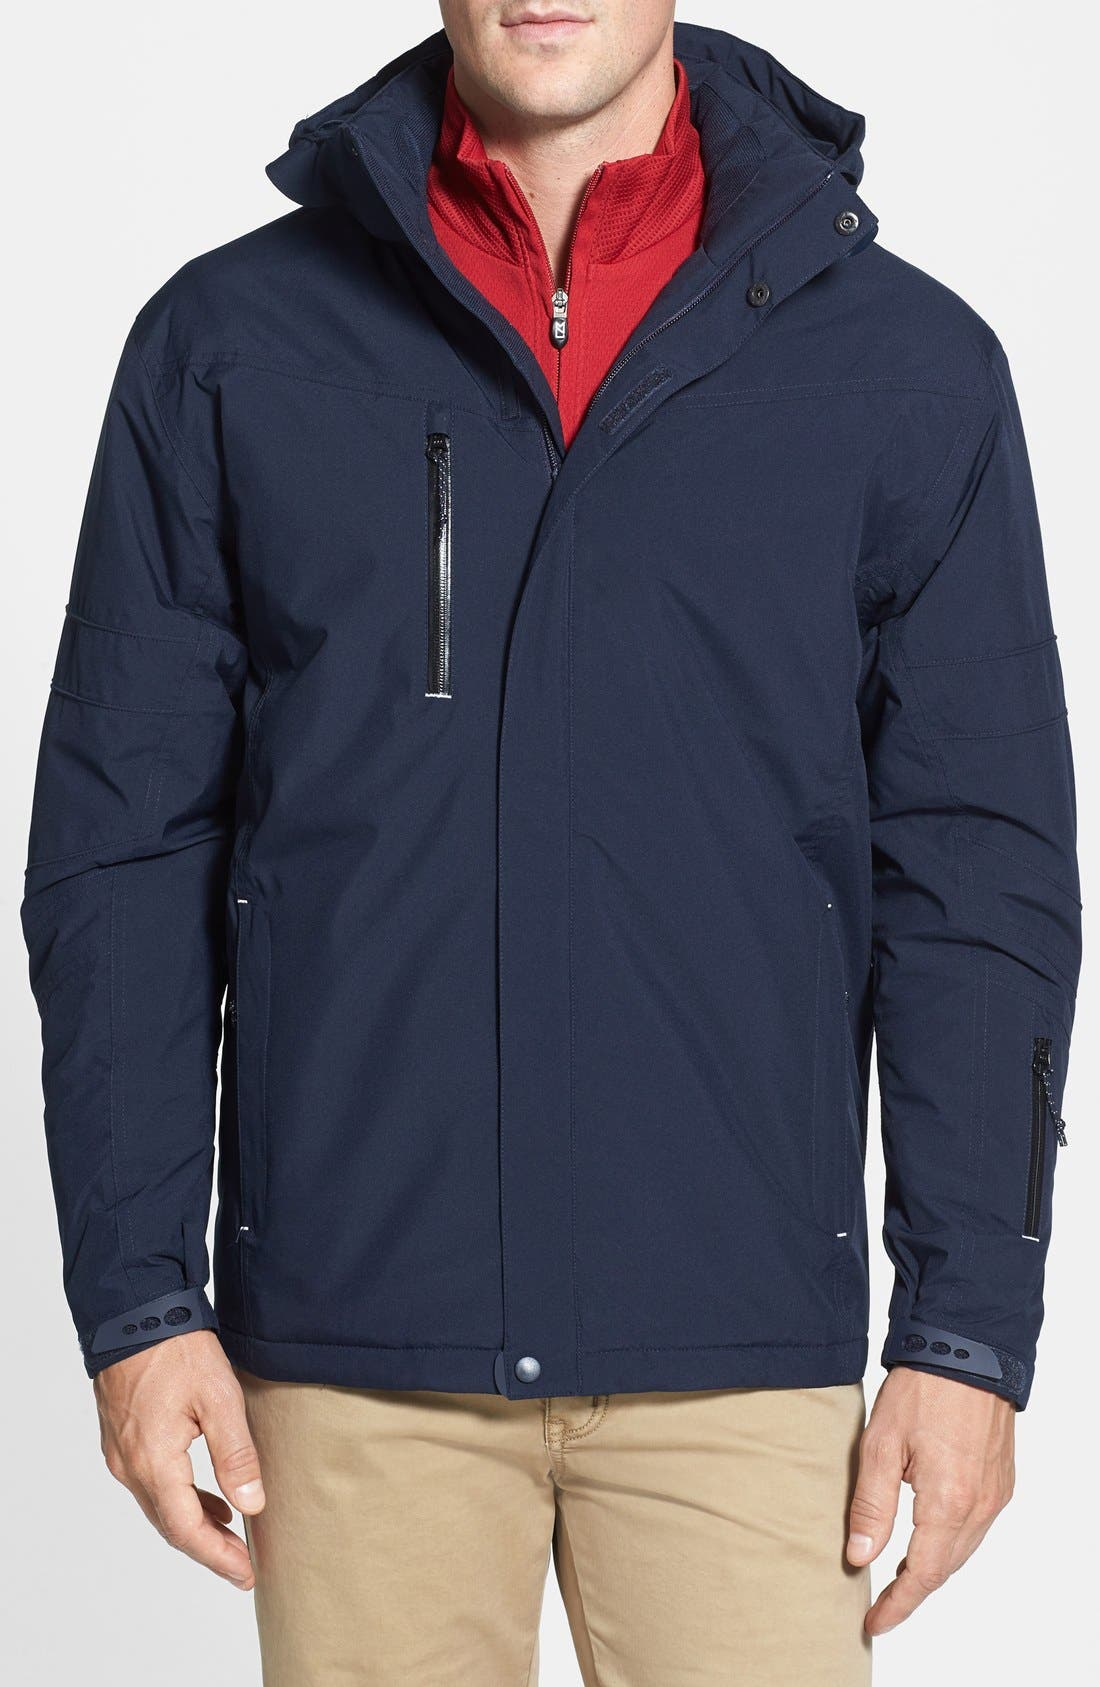 Alternate Image 1 Selected - Cutter & Buck WeatherTec Sanders Jacket (Big & Tall)